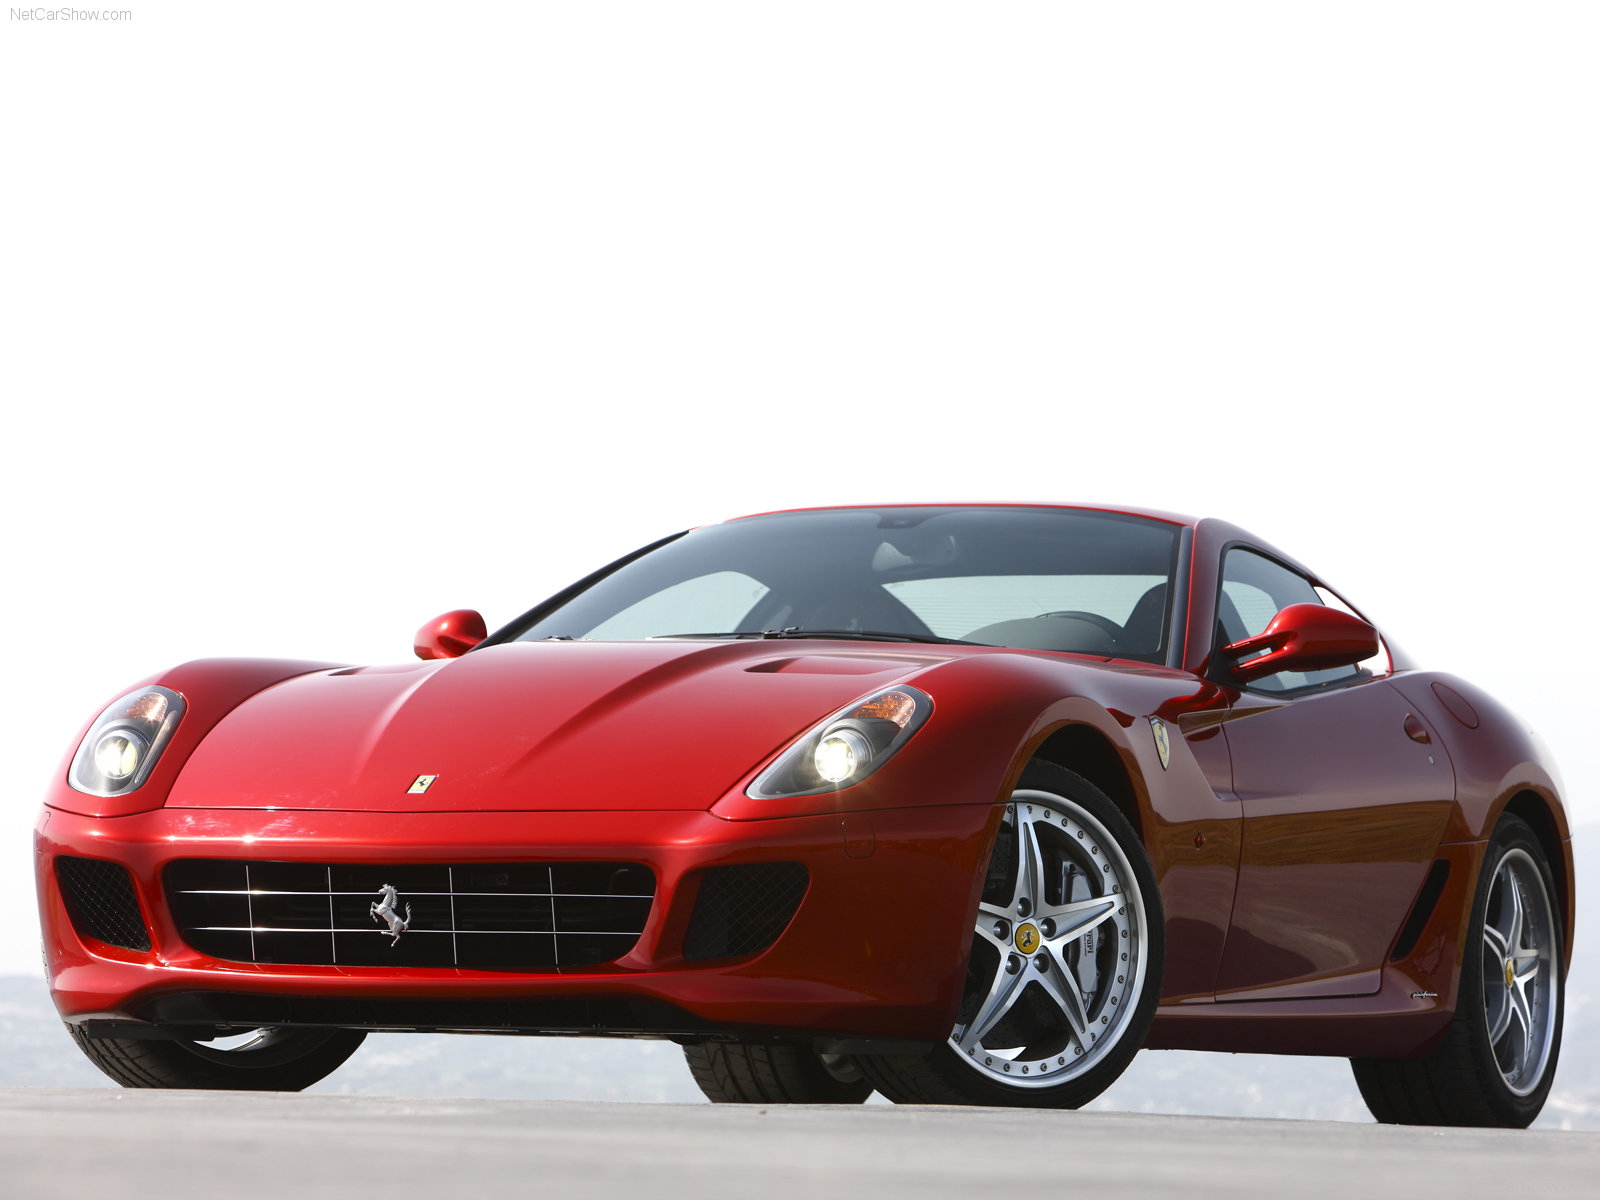 Ferrari 599 GTB Fiorano HGTE photo 65240